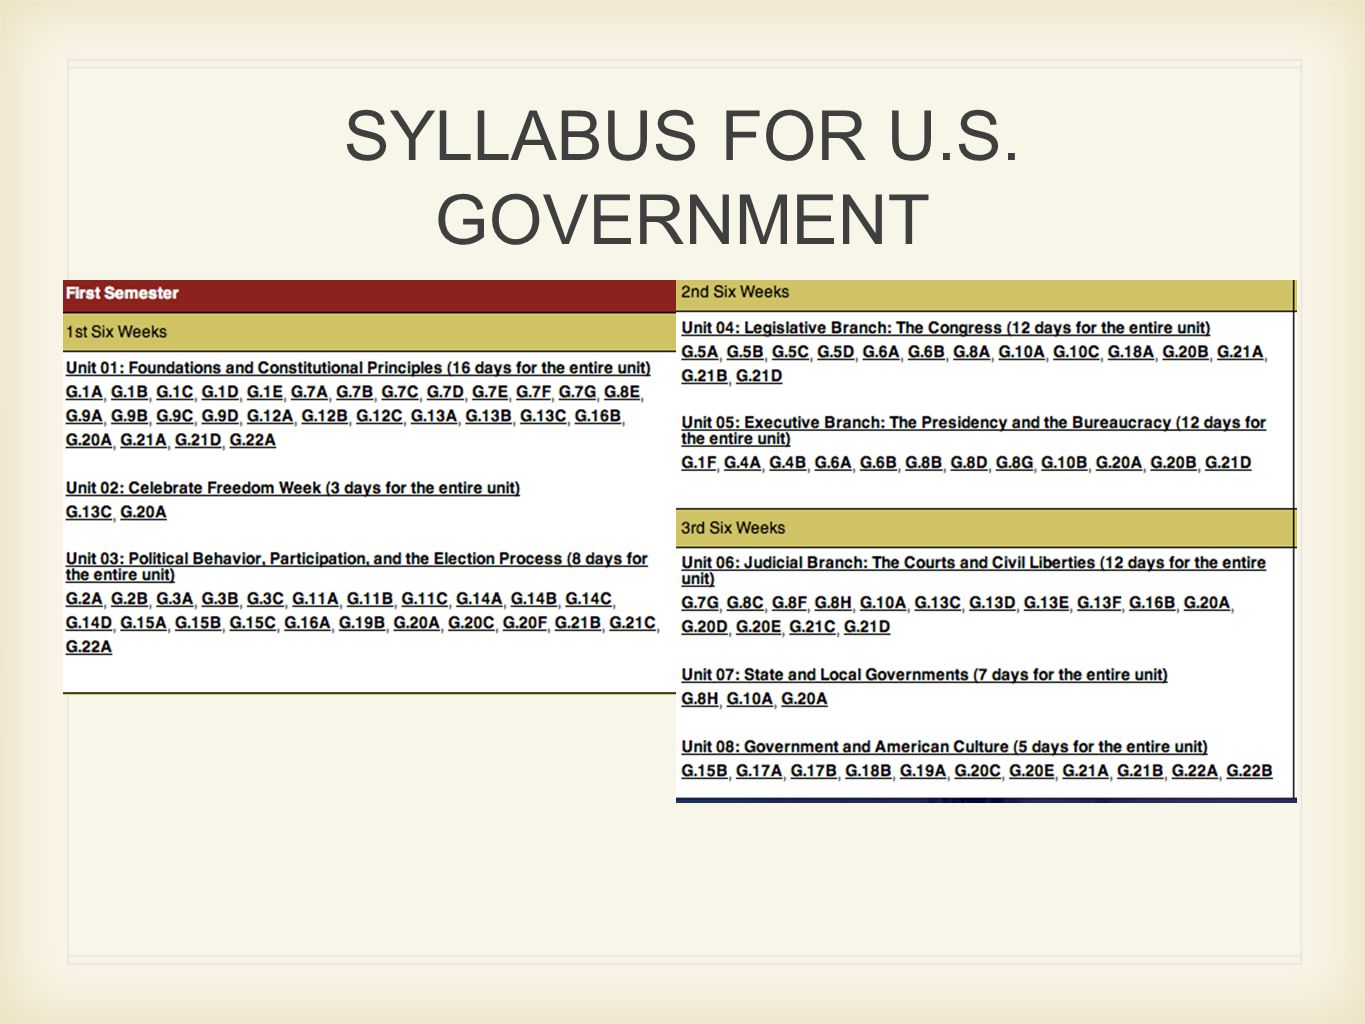 SYLLABUS FOR U.S. GOVERNMENT